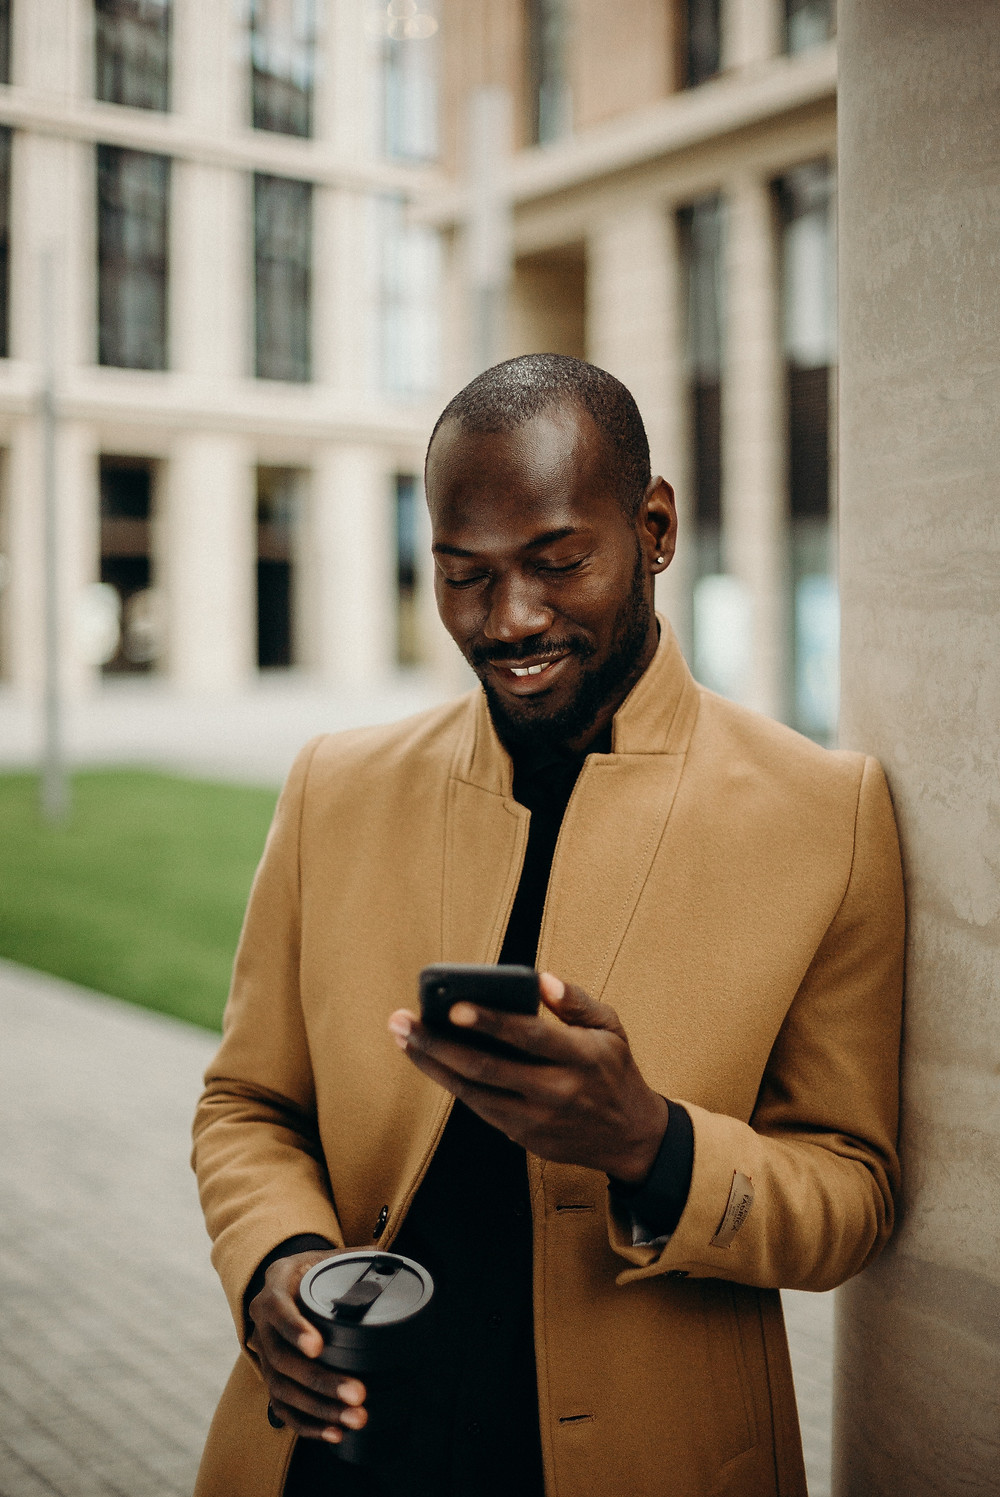 A well dressed man checks his phone